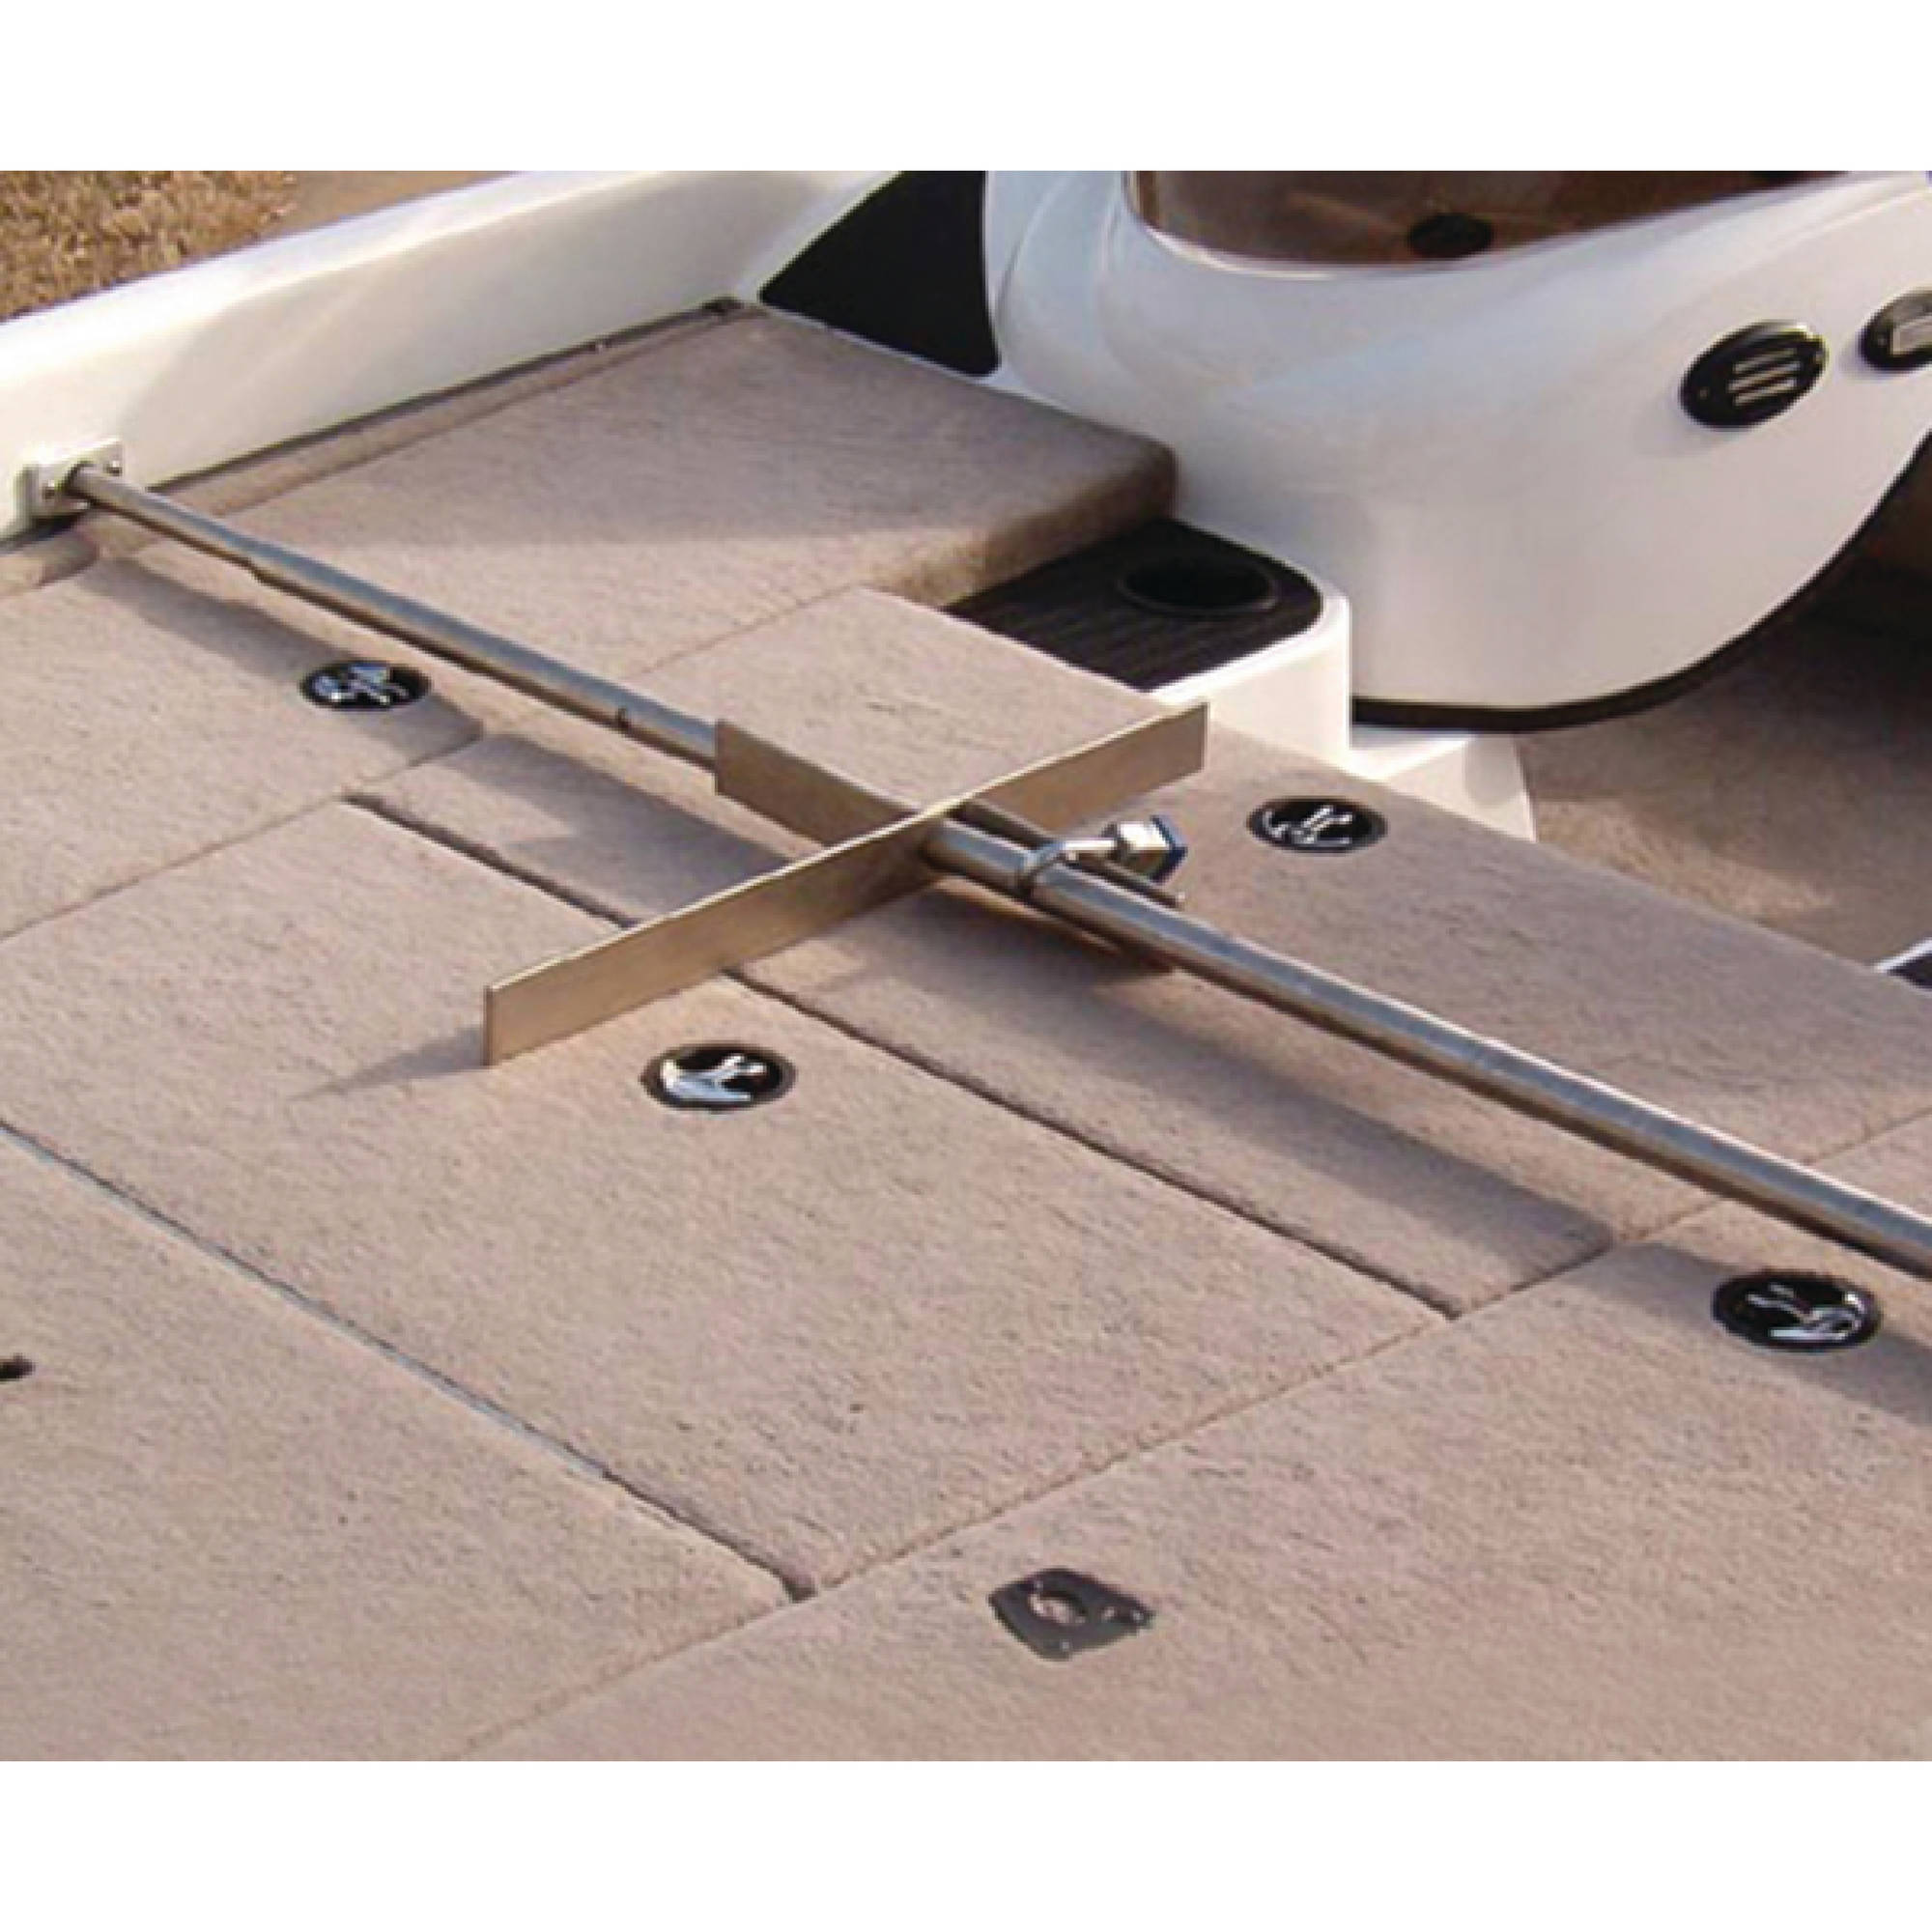 T-H Marine Loc-R-Bar Front Compartment Adapter by T-H Marine Supplies